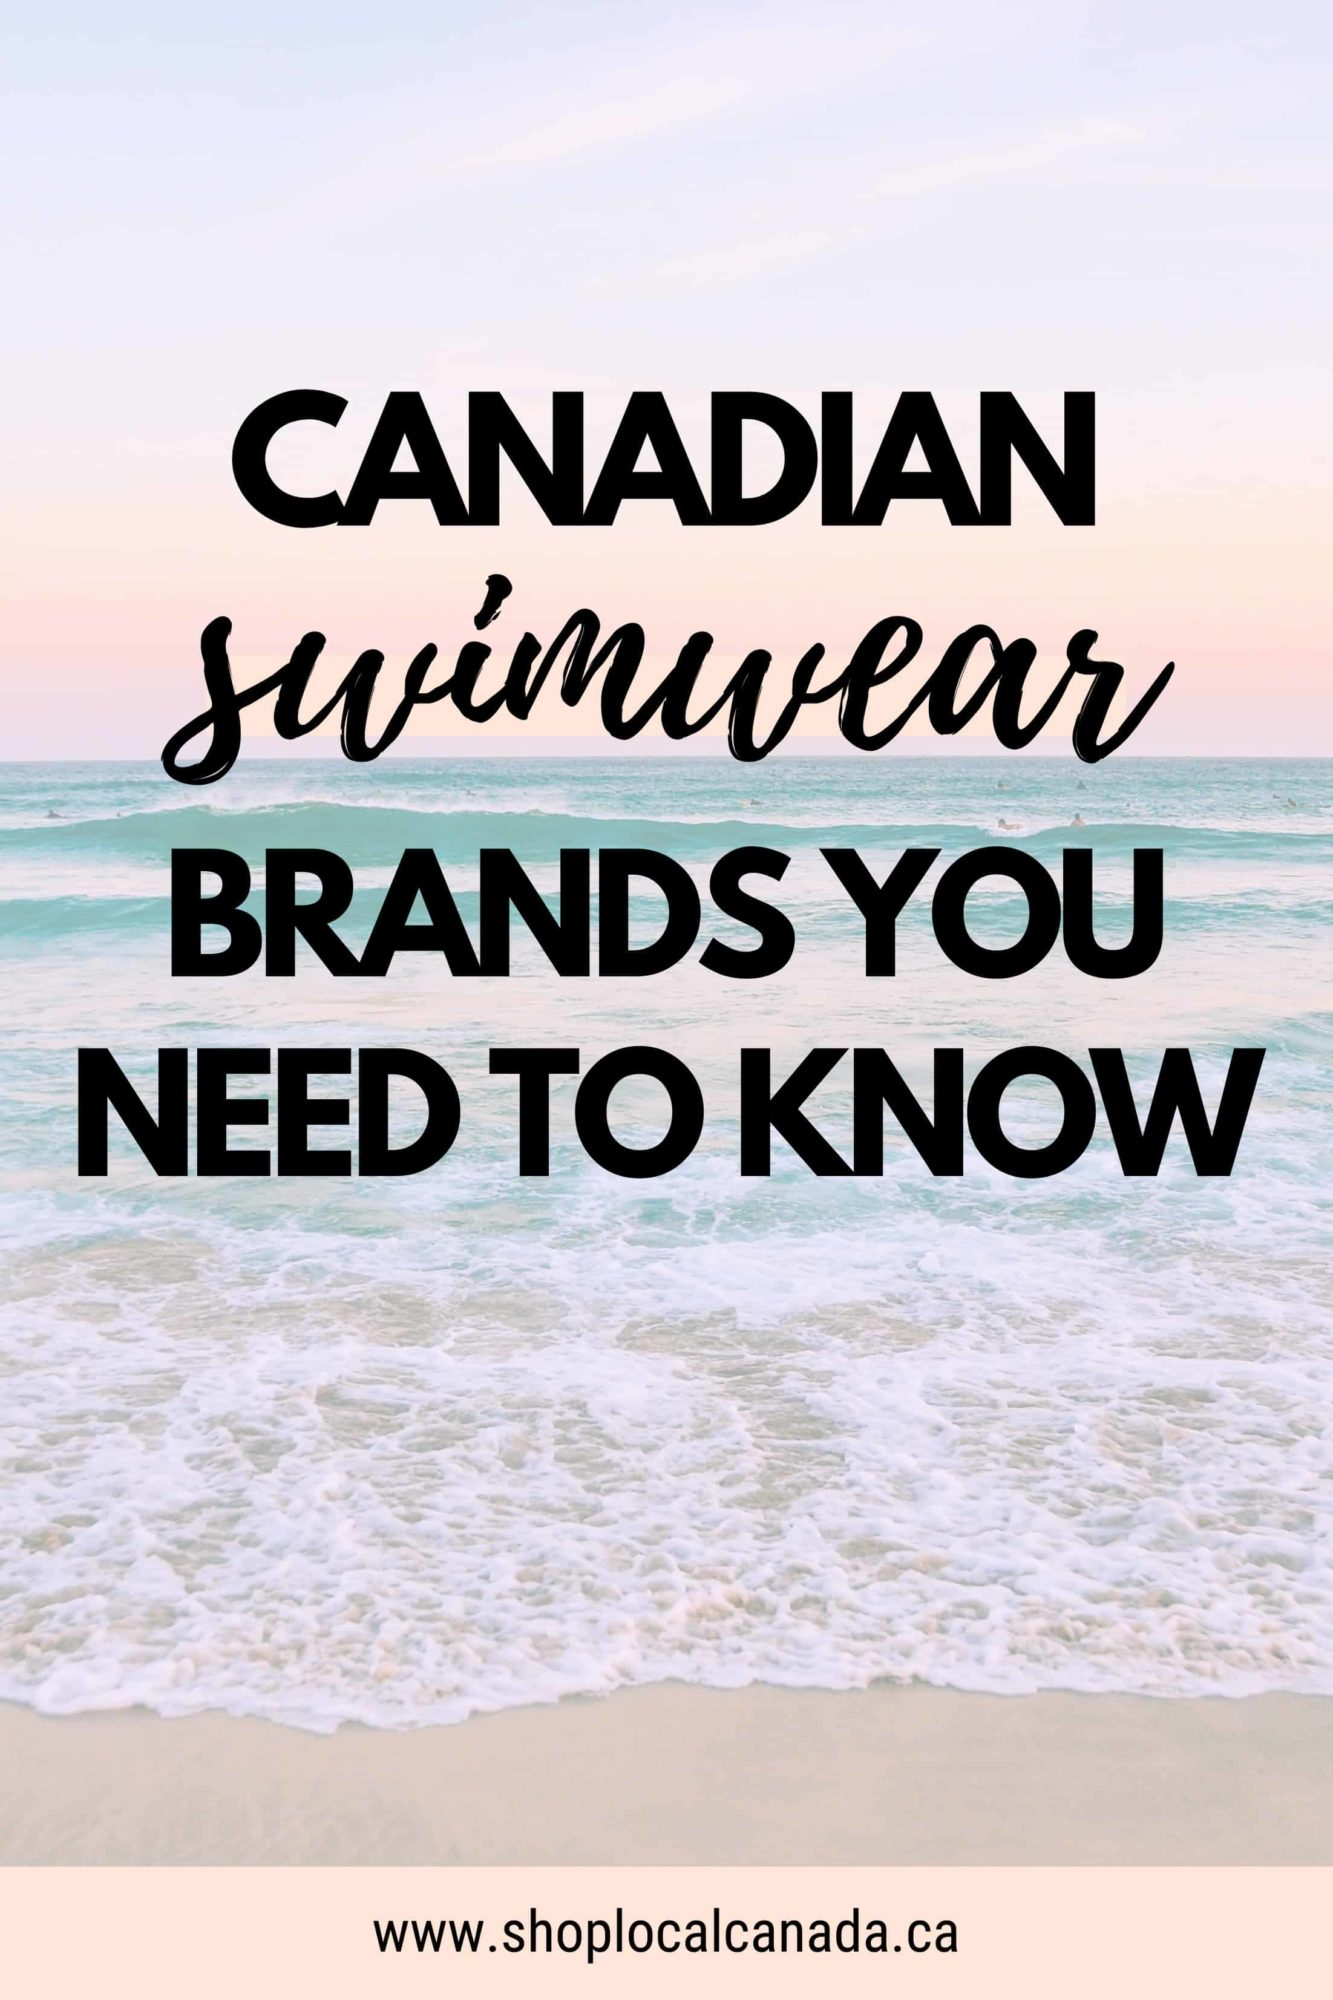 Canadian Swimwear Brands